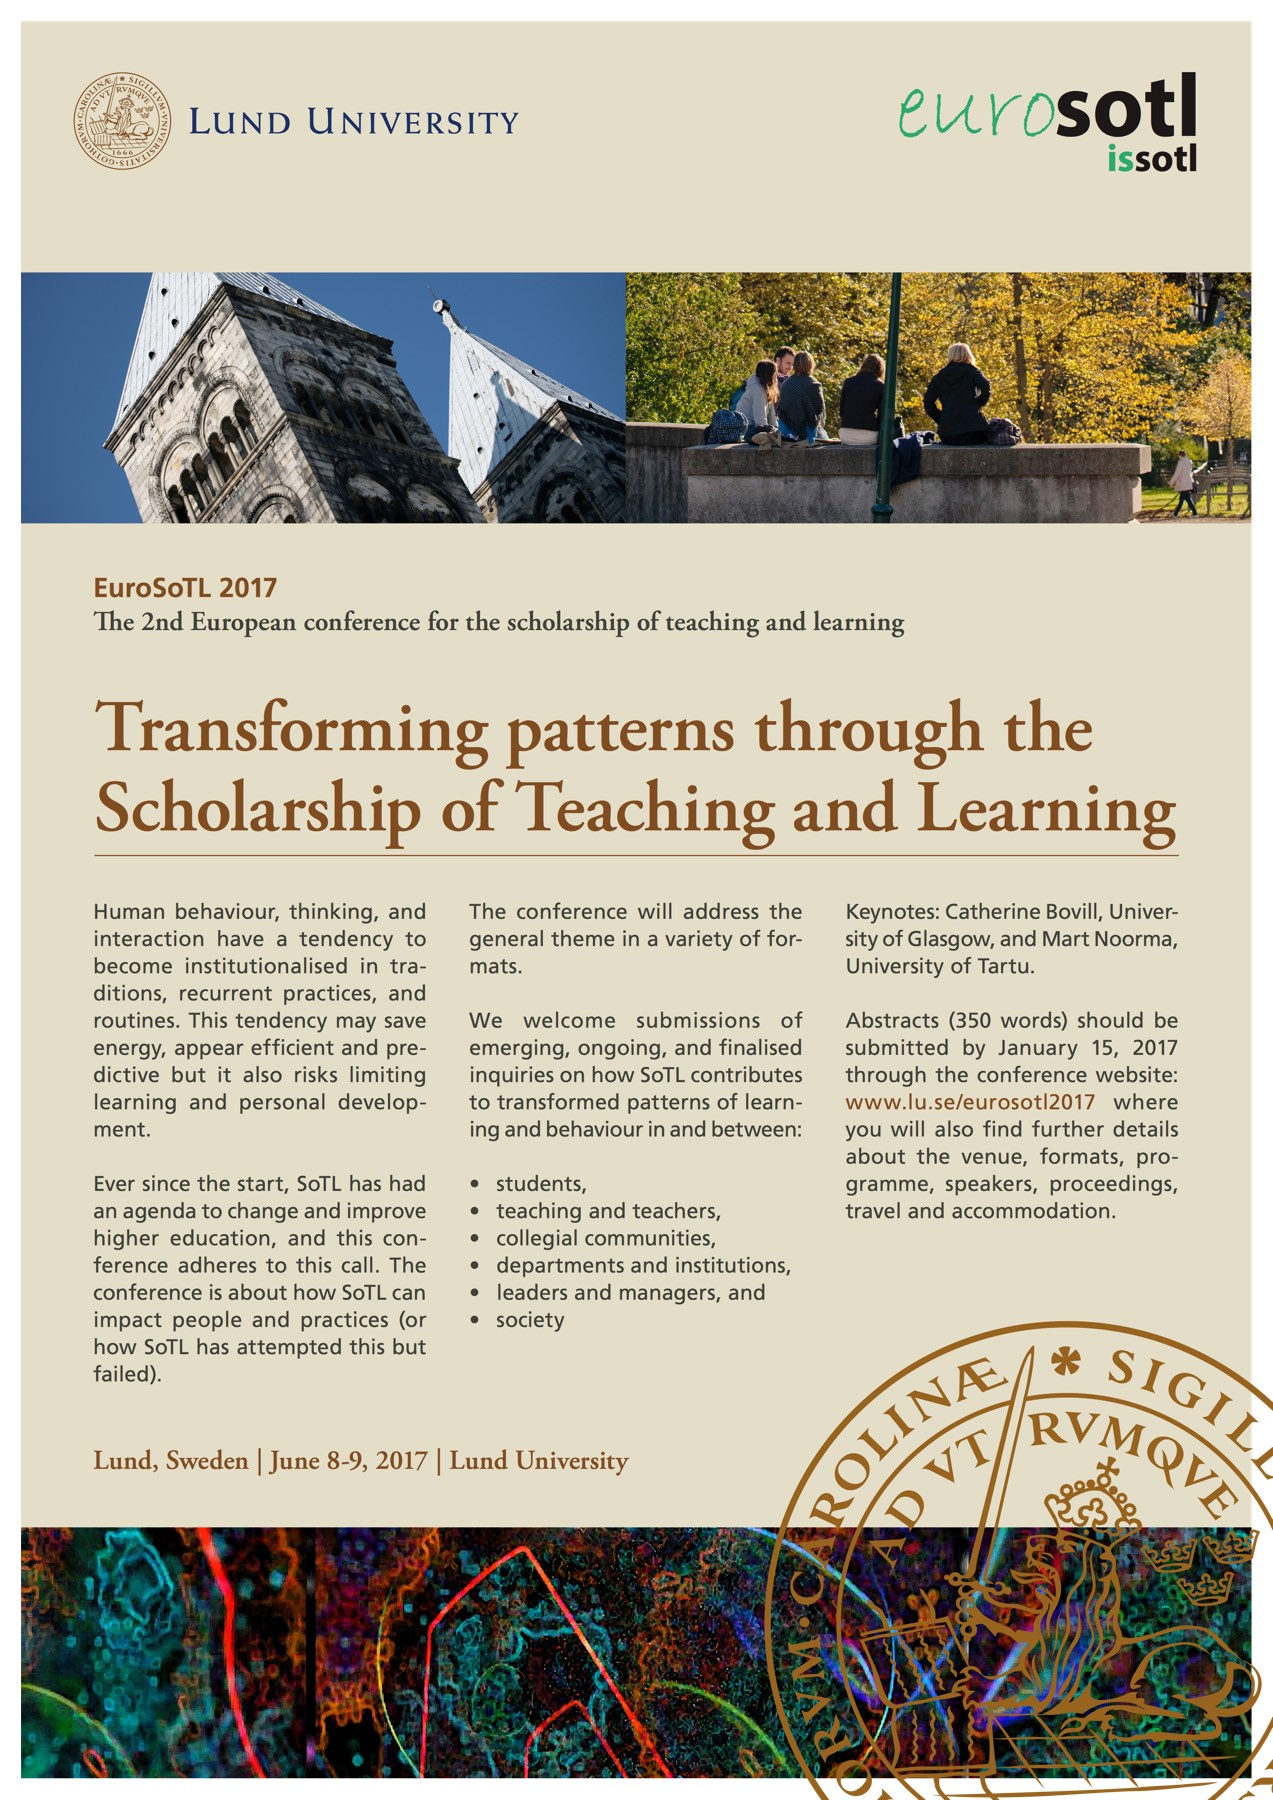 EuroSoTL 2017: Transforming patterns through the Scholarship of